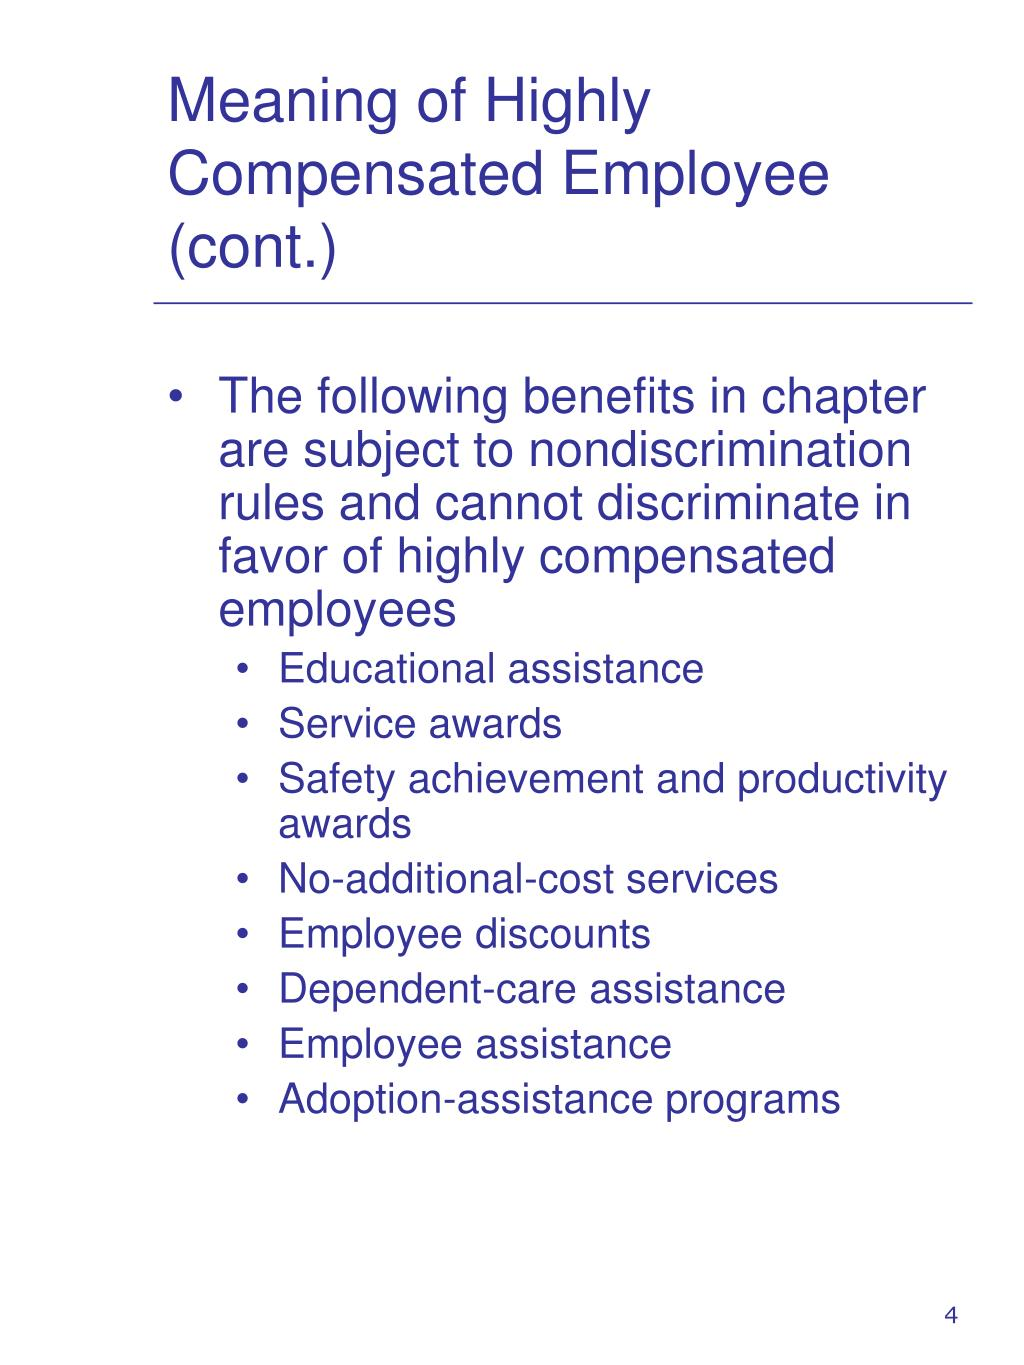 Meaning of Highly Compensated Employee (cont.)